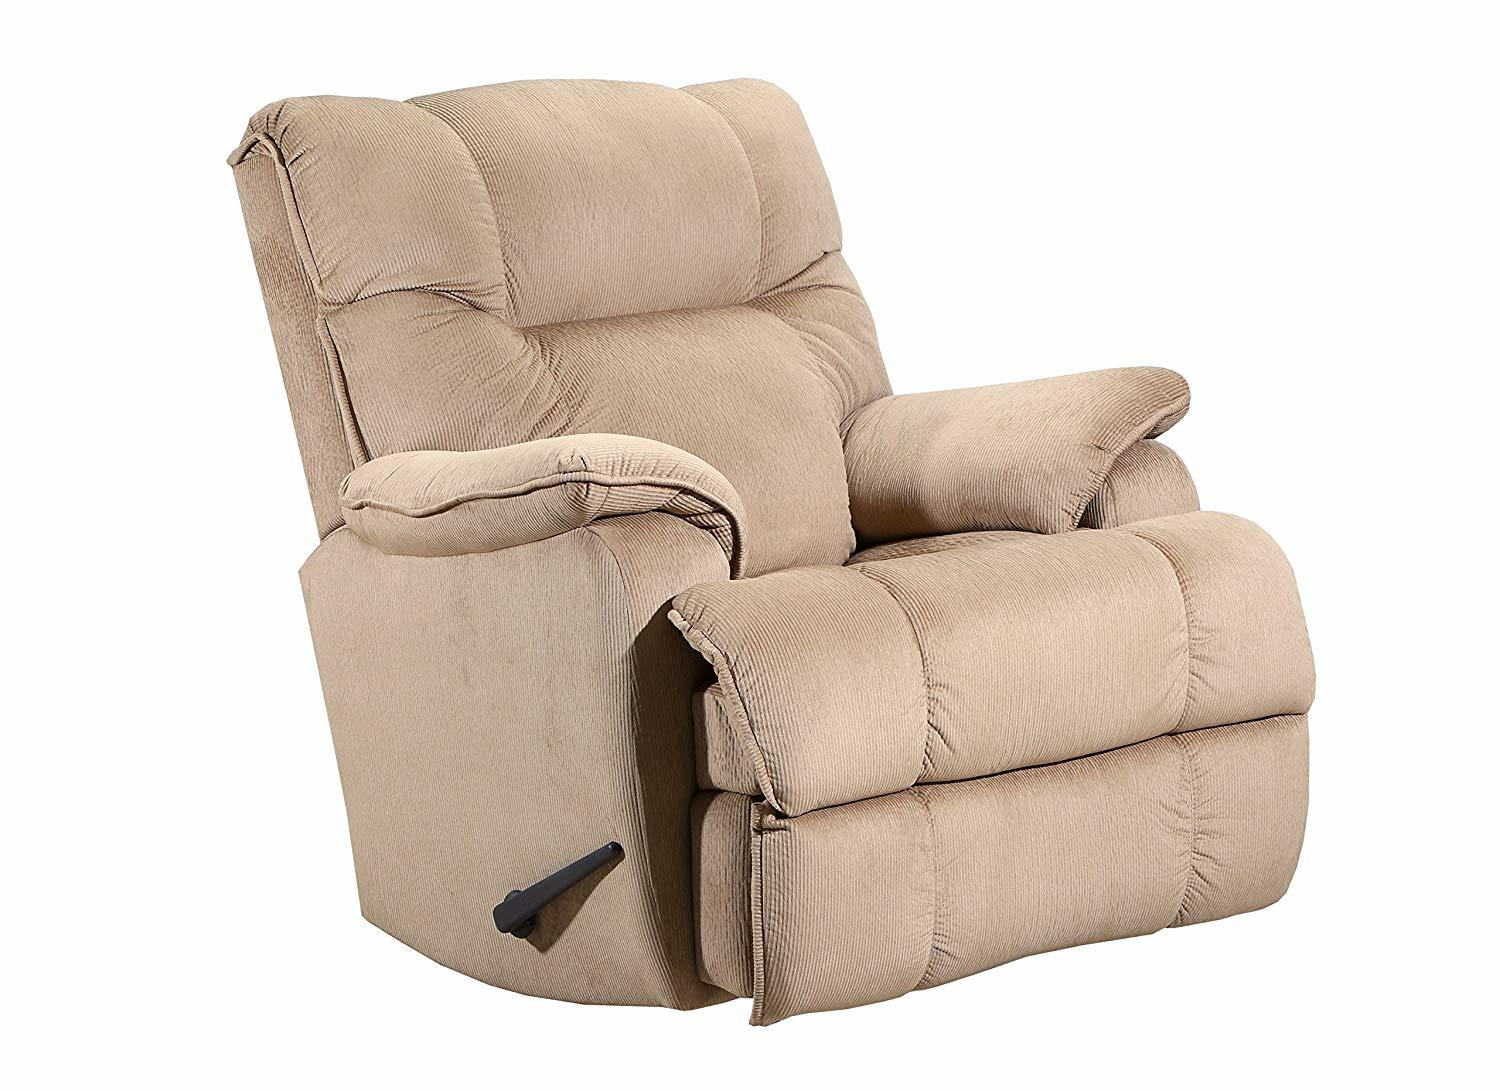 Best Lane Recliners Home Furnishings Rancho 4151 18 8413 Recliner